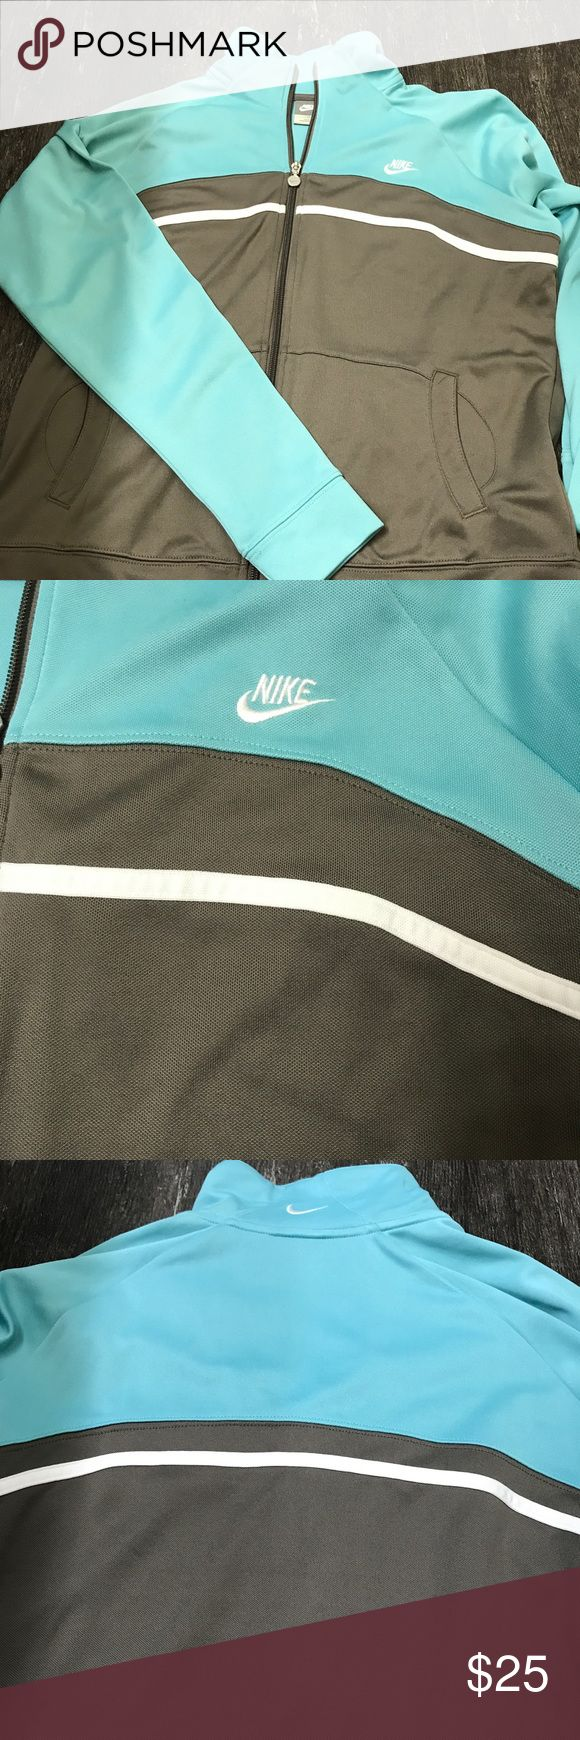 Nike jogging suit Super comfortable Nike jogging suit, T-shirt size medium, jacket size large, pants size small. Nike Other